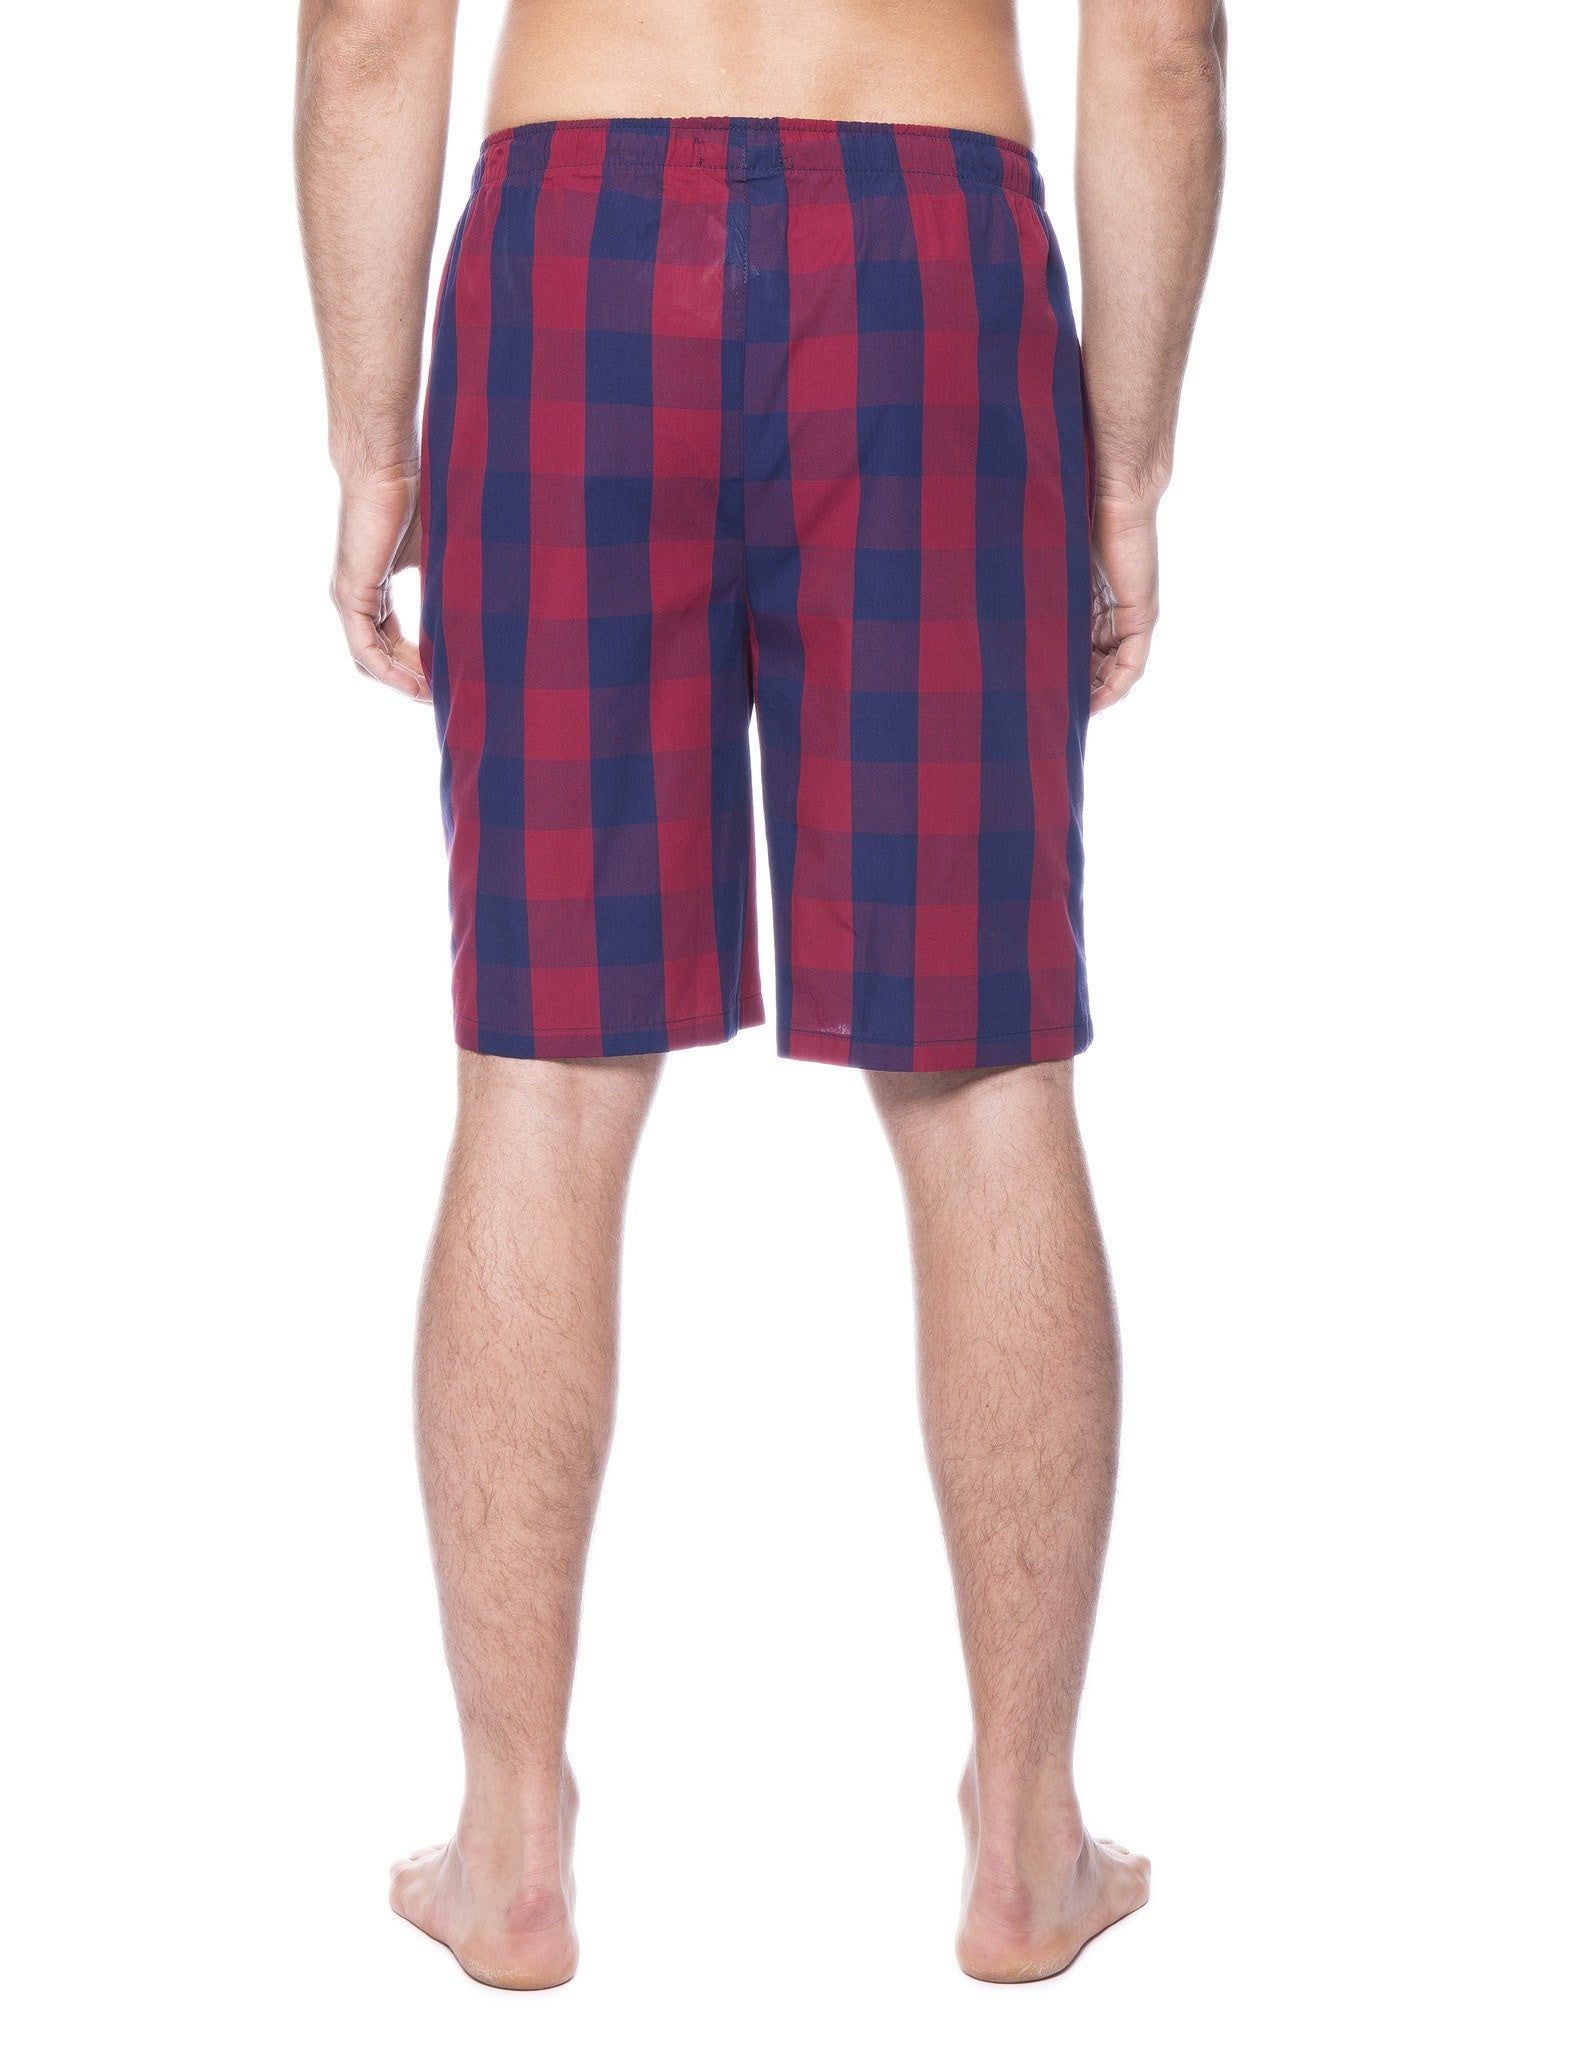 Gingham Red/Navy